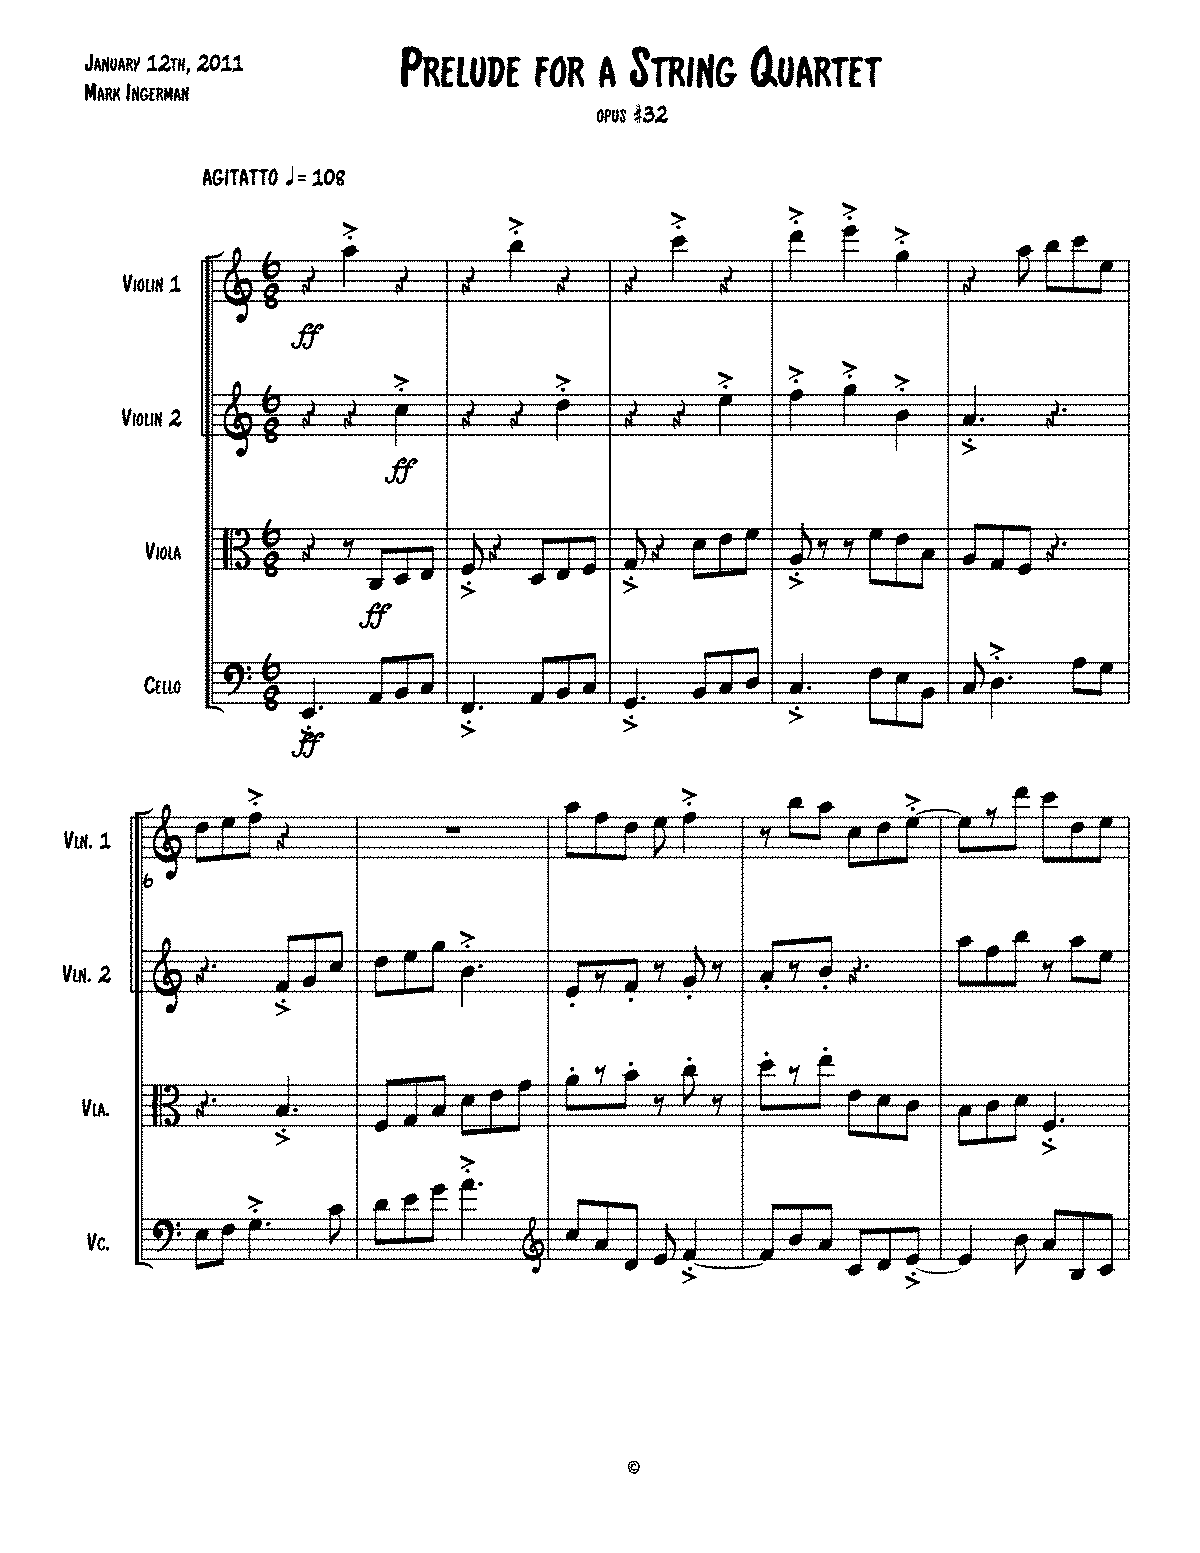 PMLP186472-PRELUDE FOR A STRING 4 opus 32.pdf